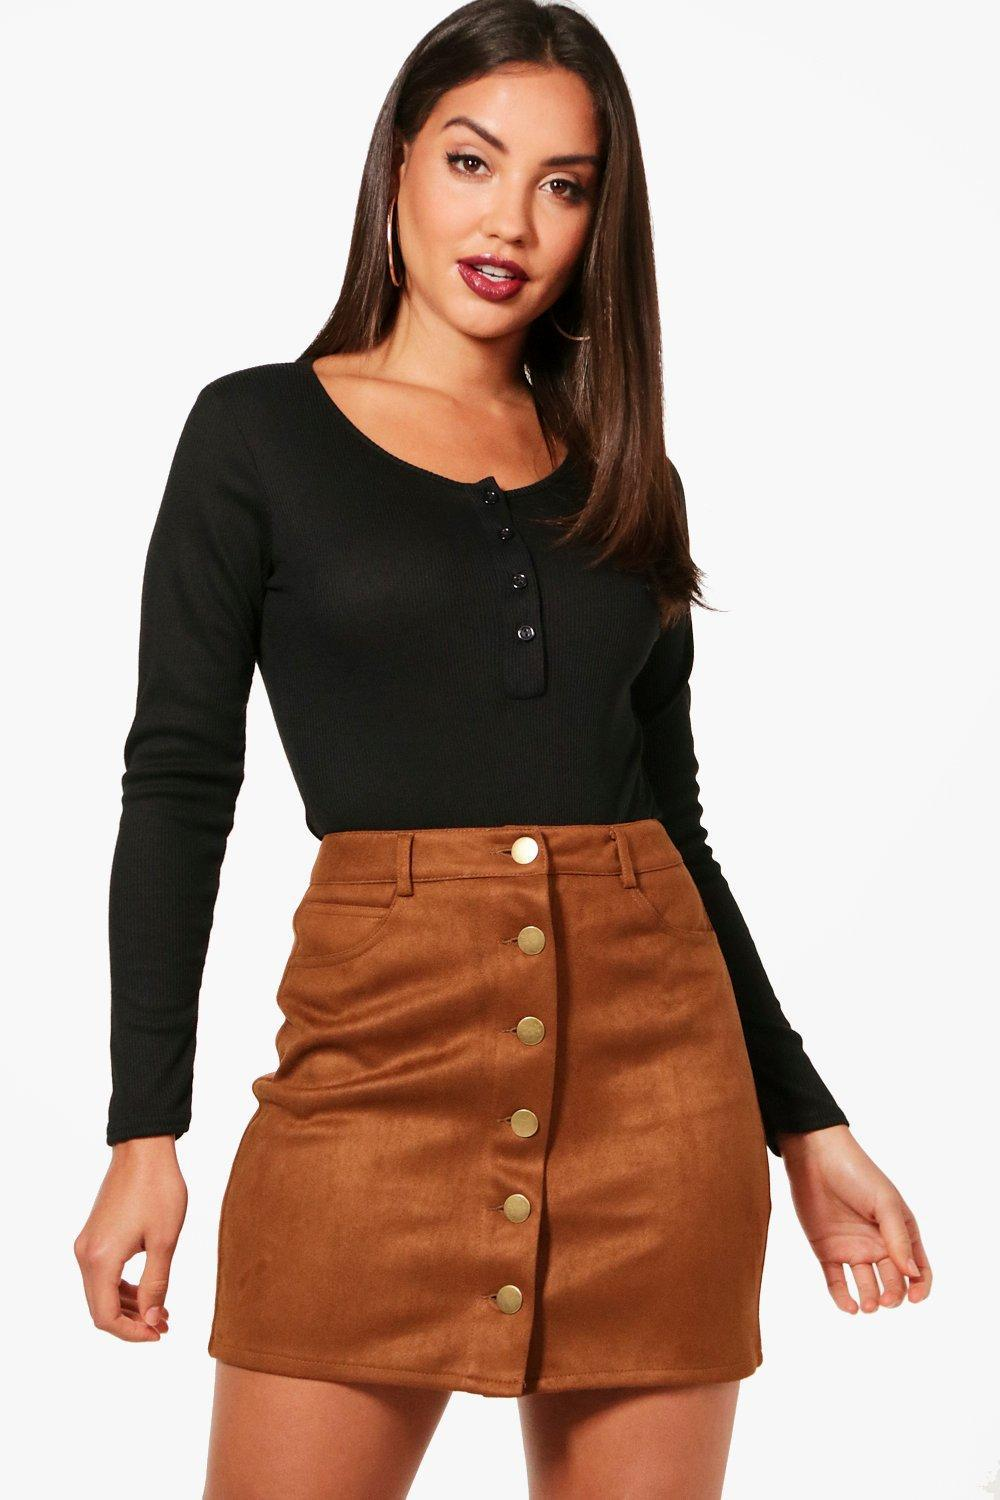 Boohoo Longsleeve Knitted Button Up Bodysuit Clearance Low Shipping Sale Finishline Outlet Clearance Store 4IuUq6jH